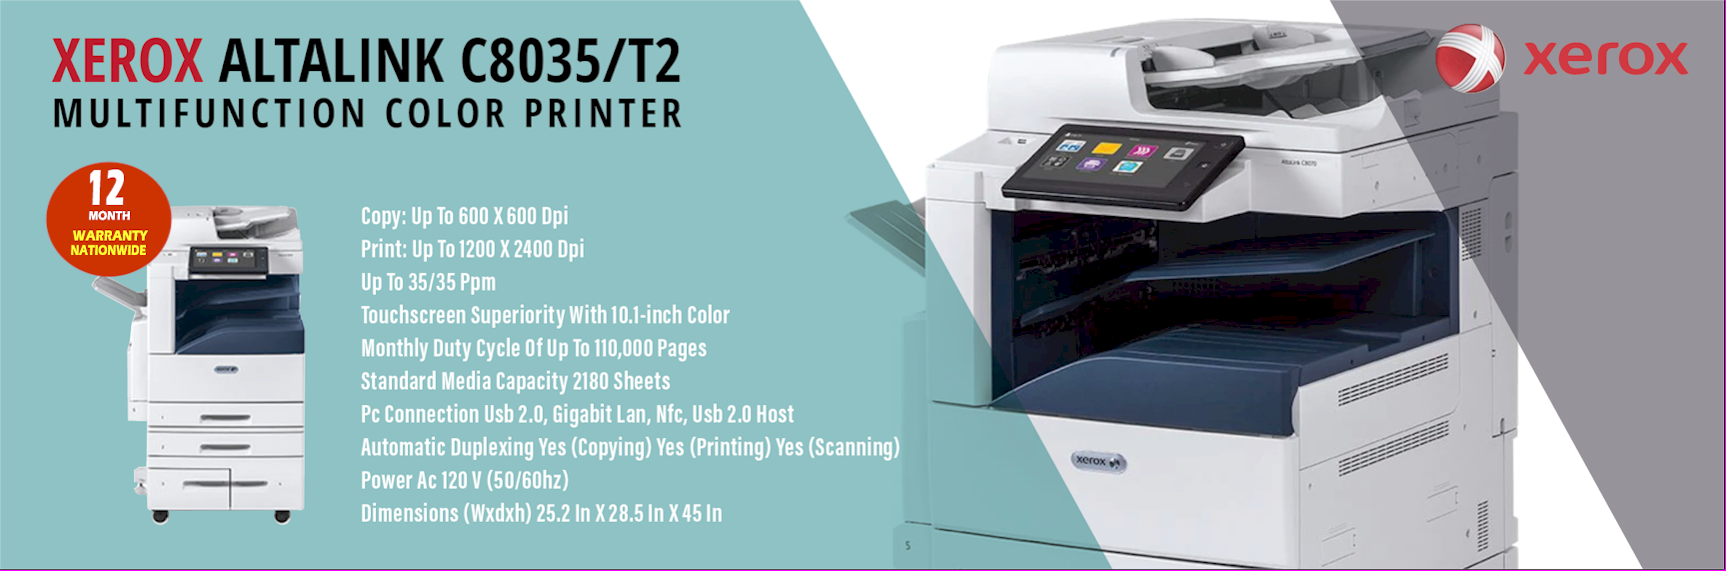 Xerox B8035/T2 Printer